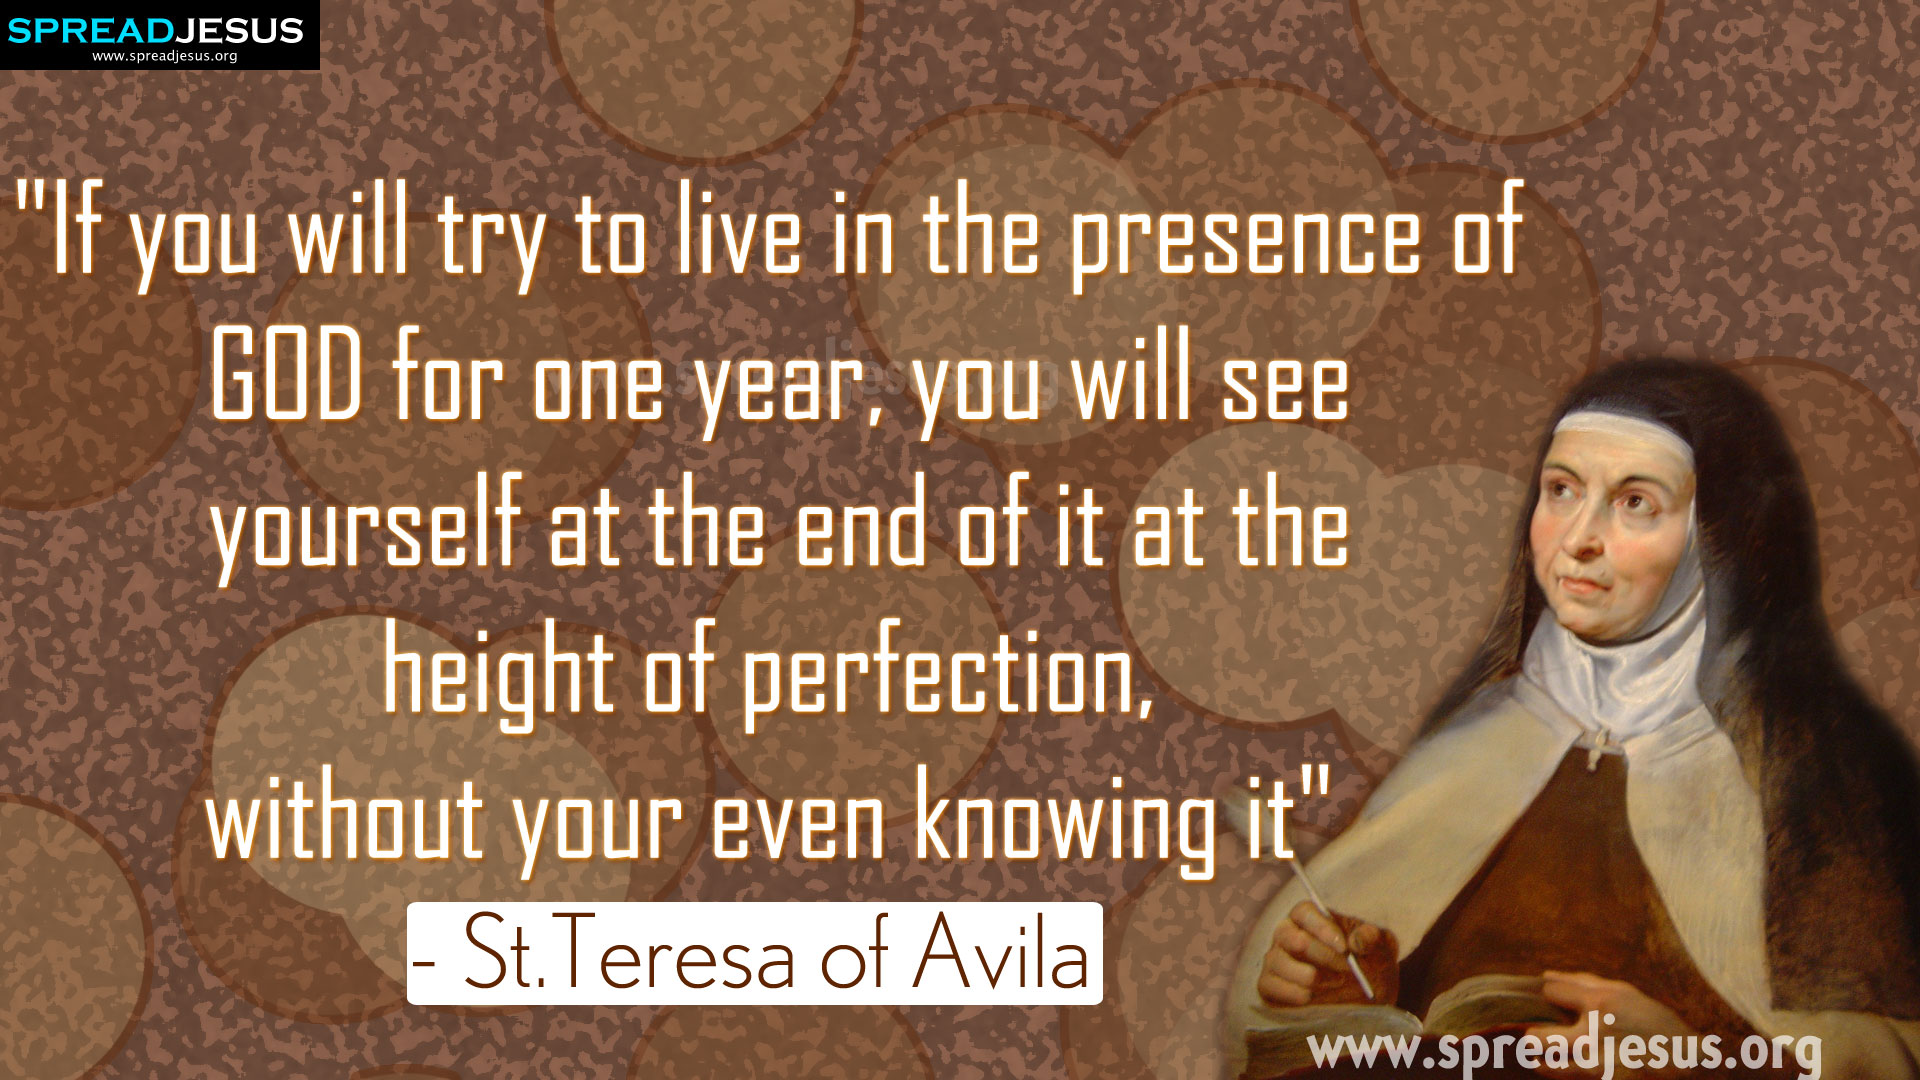 "Saint Teresa of Avila Quotes """"lf you will try to live in the presence of GOD for one year..."